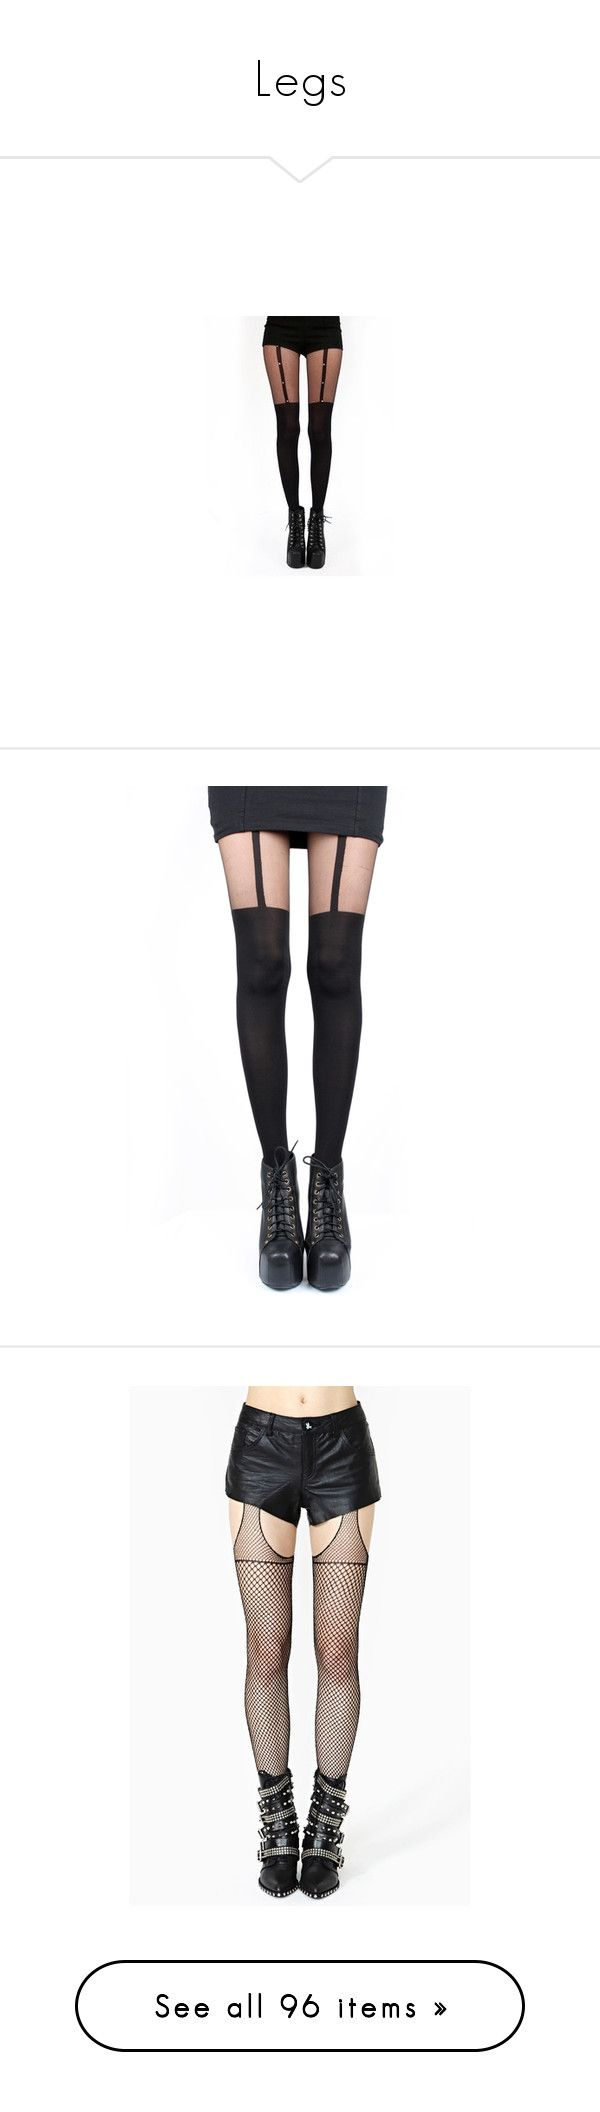 """Legs"" by ilinablooms ❤ liked on Polyvore featuring intimates, hosiery, tights, pants, bottoms, leggings, legs, pamela mann tights, goth tights and pamela mann"